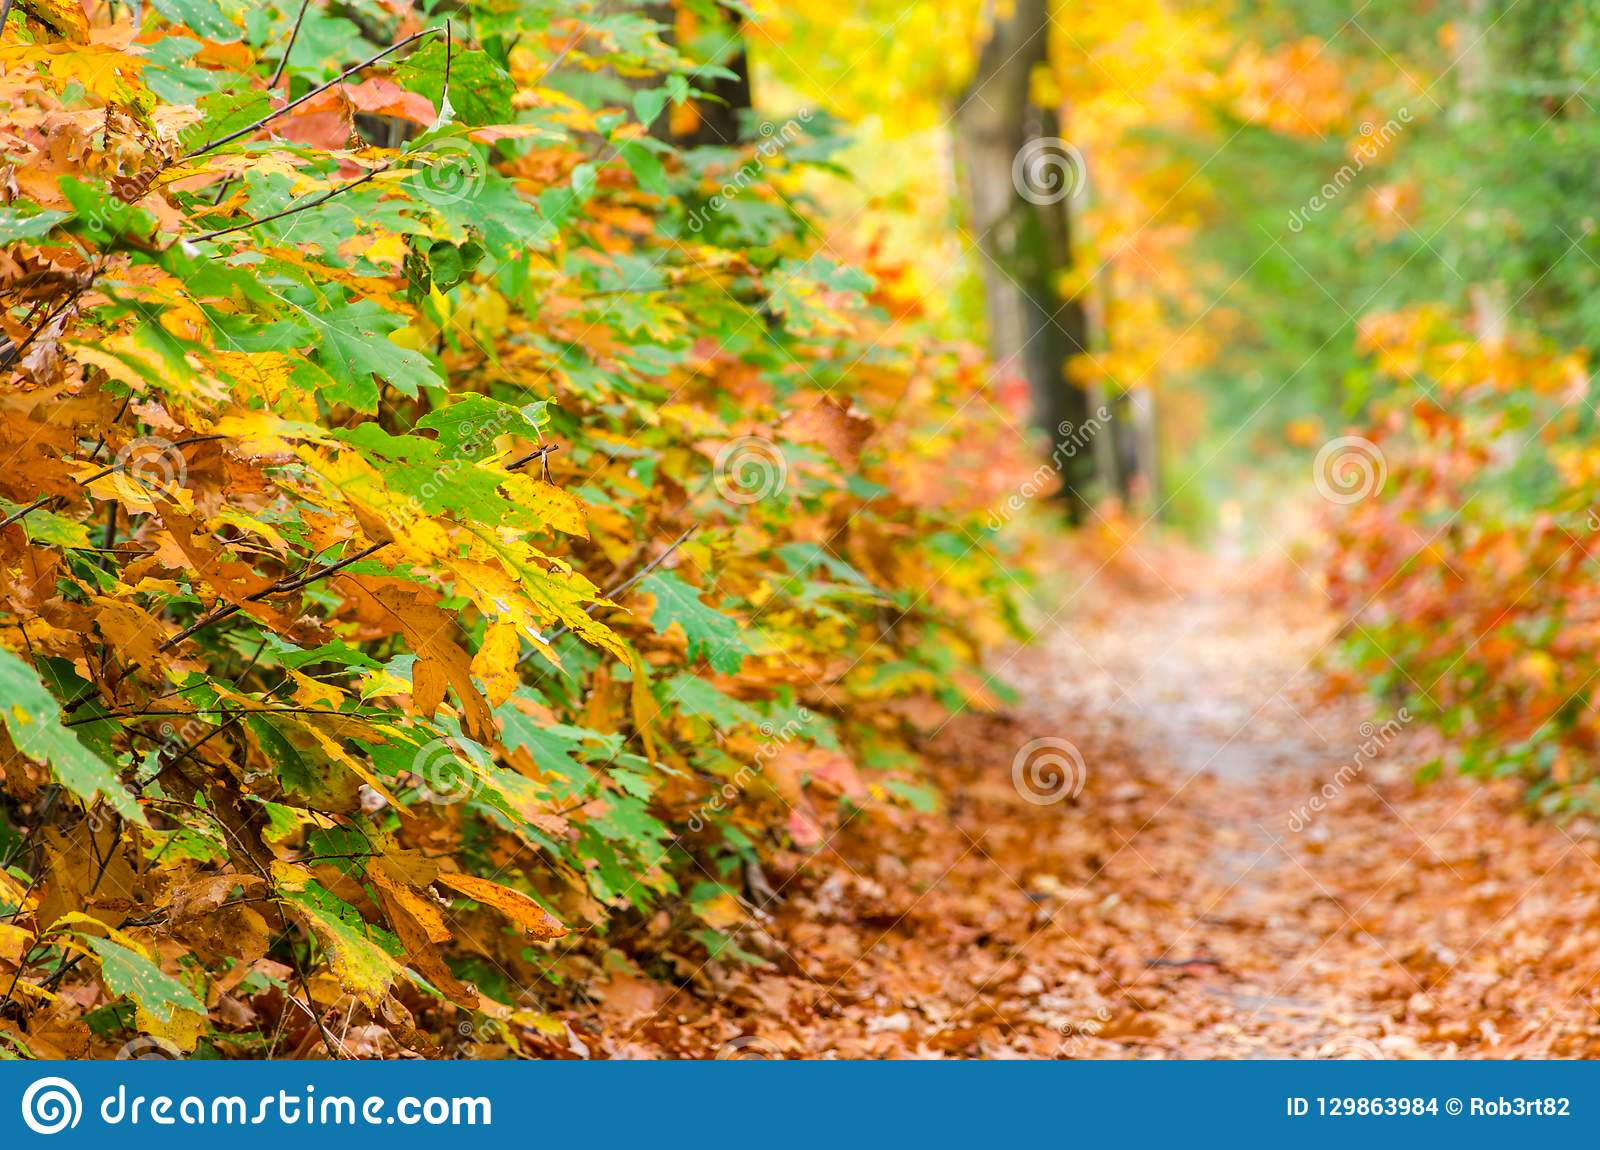 Autumn forest nature background. Autumn, fall forest. Path of red leaves towards light